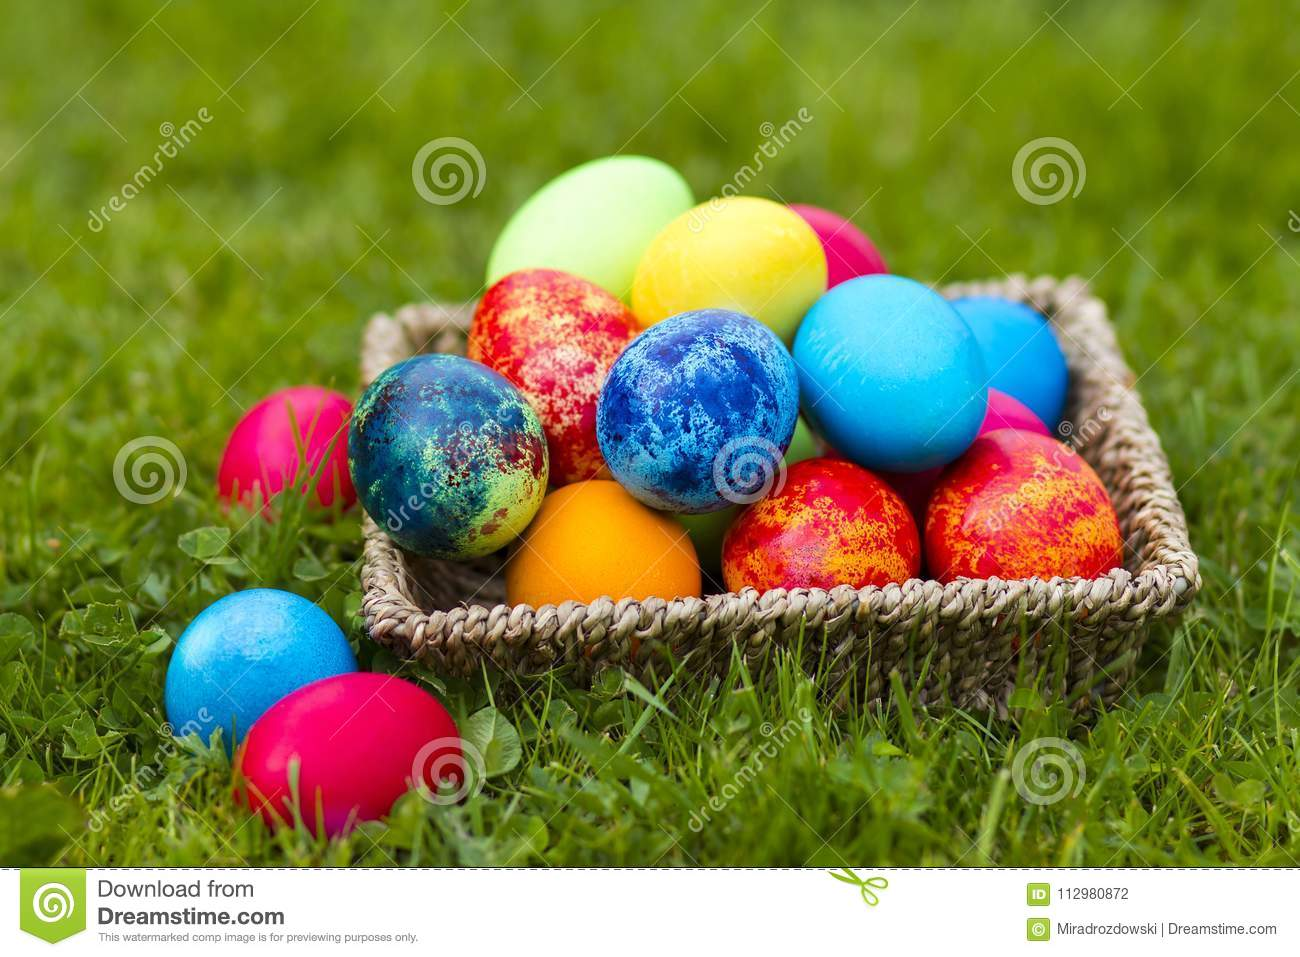 Happy Easter, colorful eggs in a basket